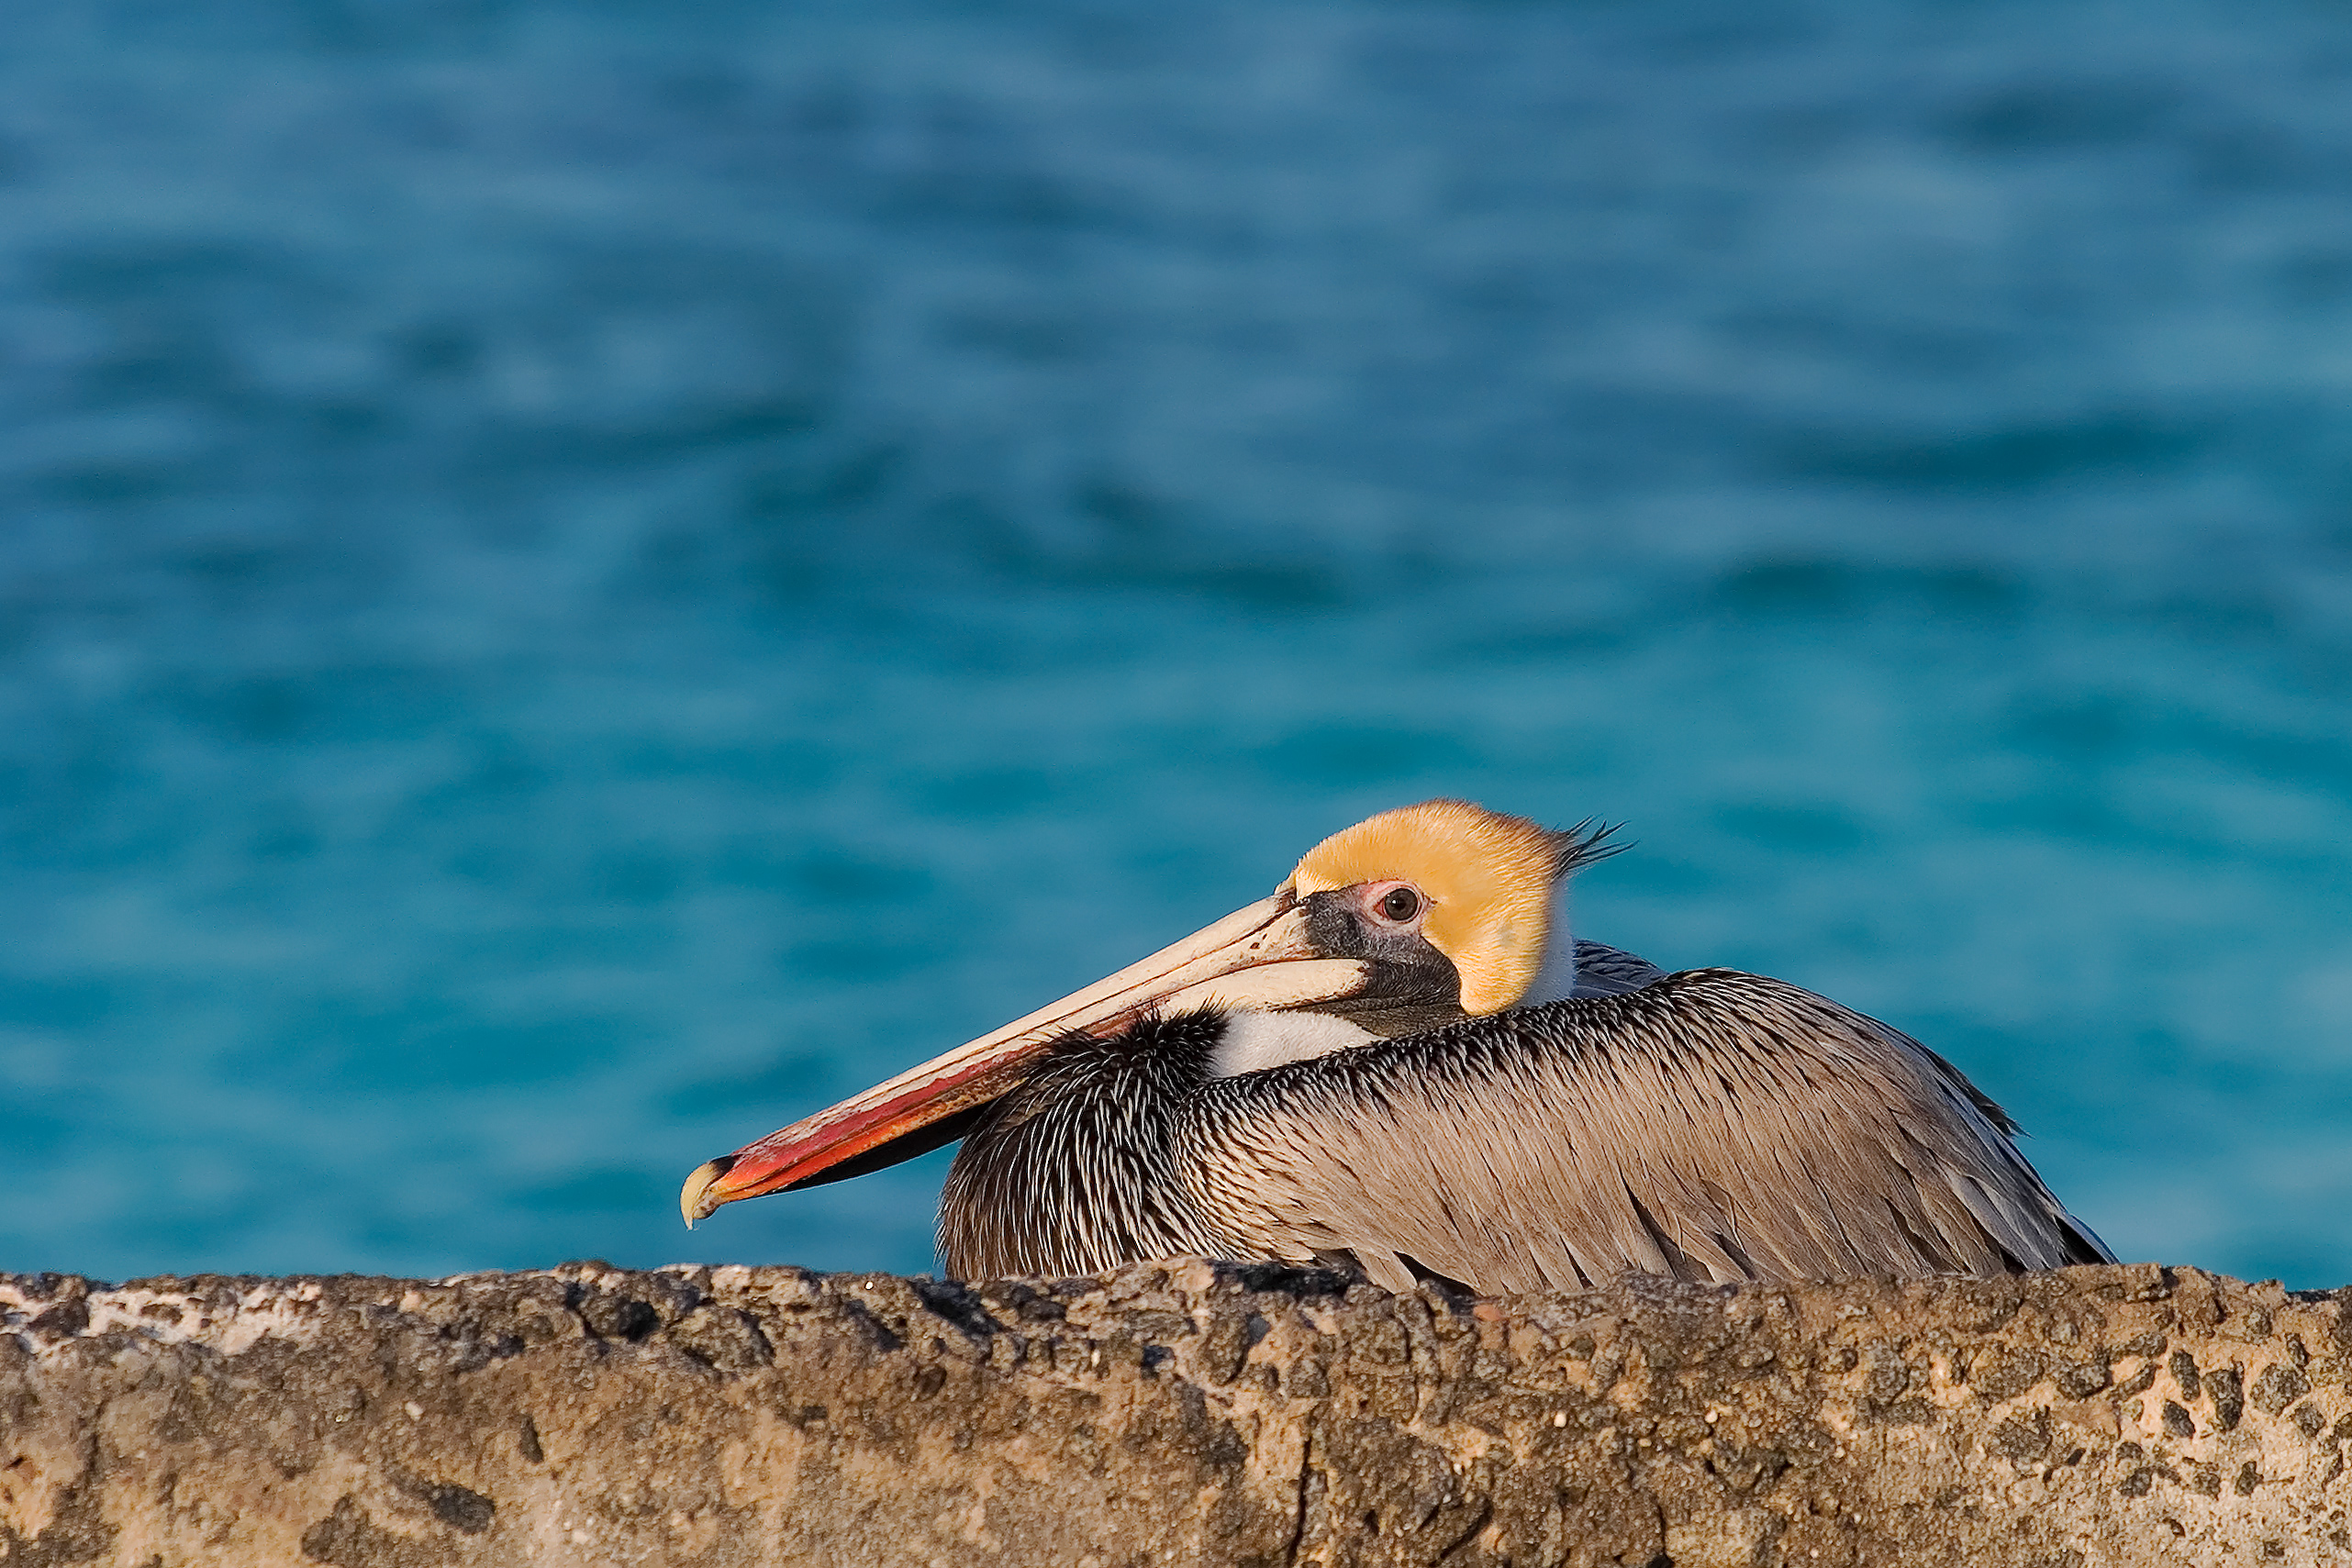 Birding in Dry Tortugas National Park